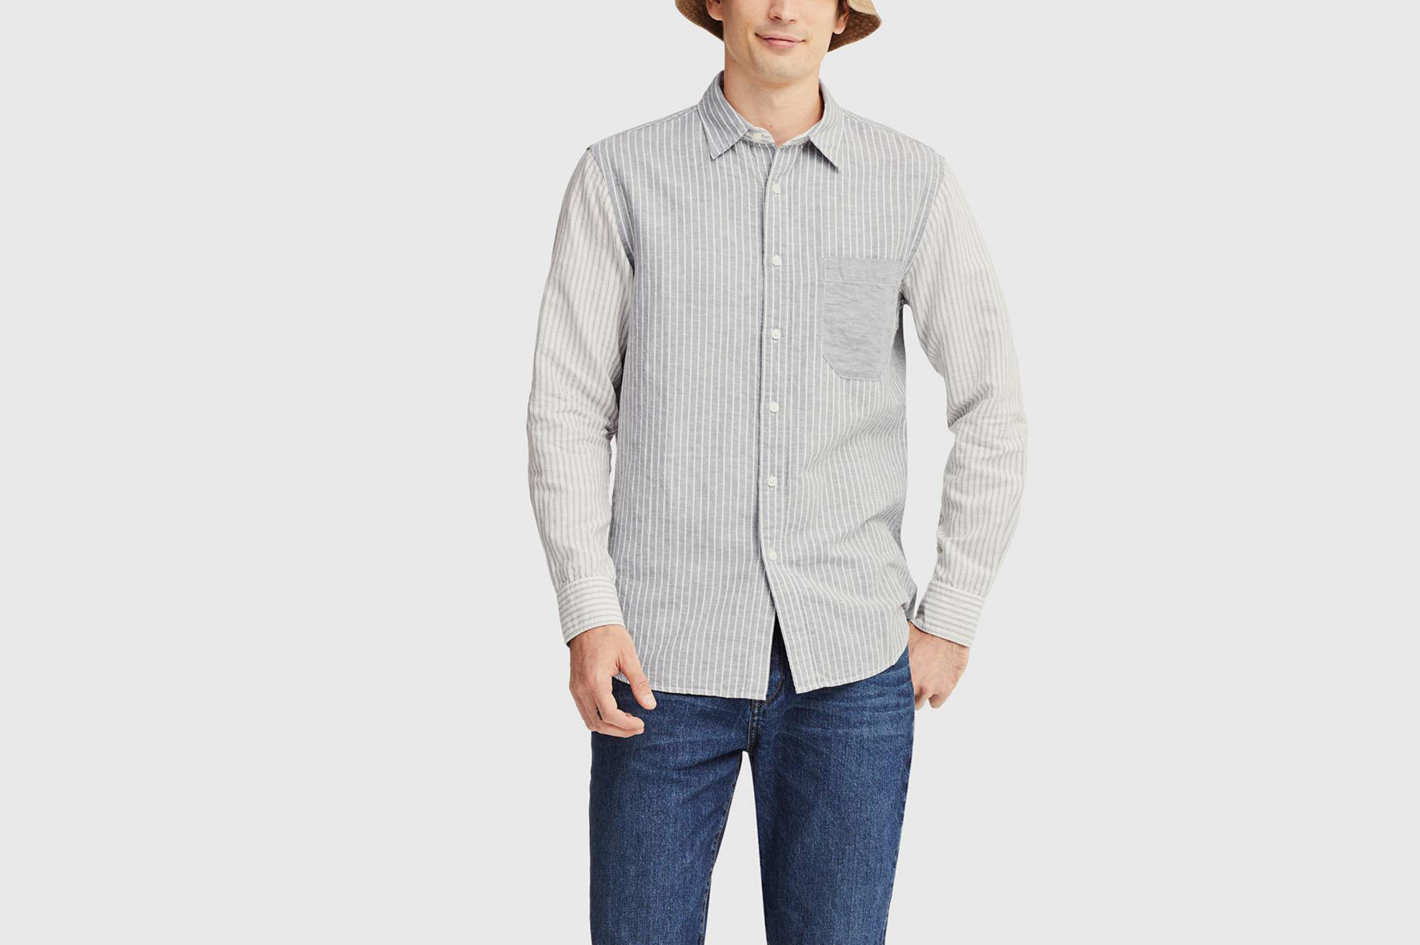 Uniqlo X JWA Linen Cotton Long-Sleeved Shirt